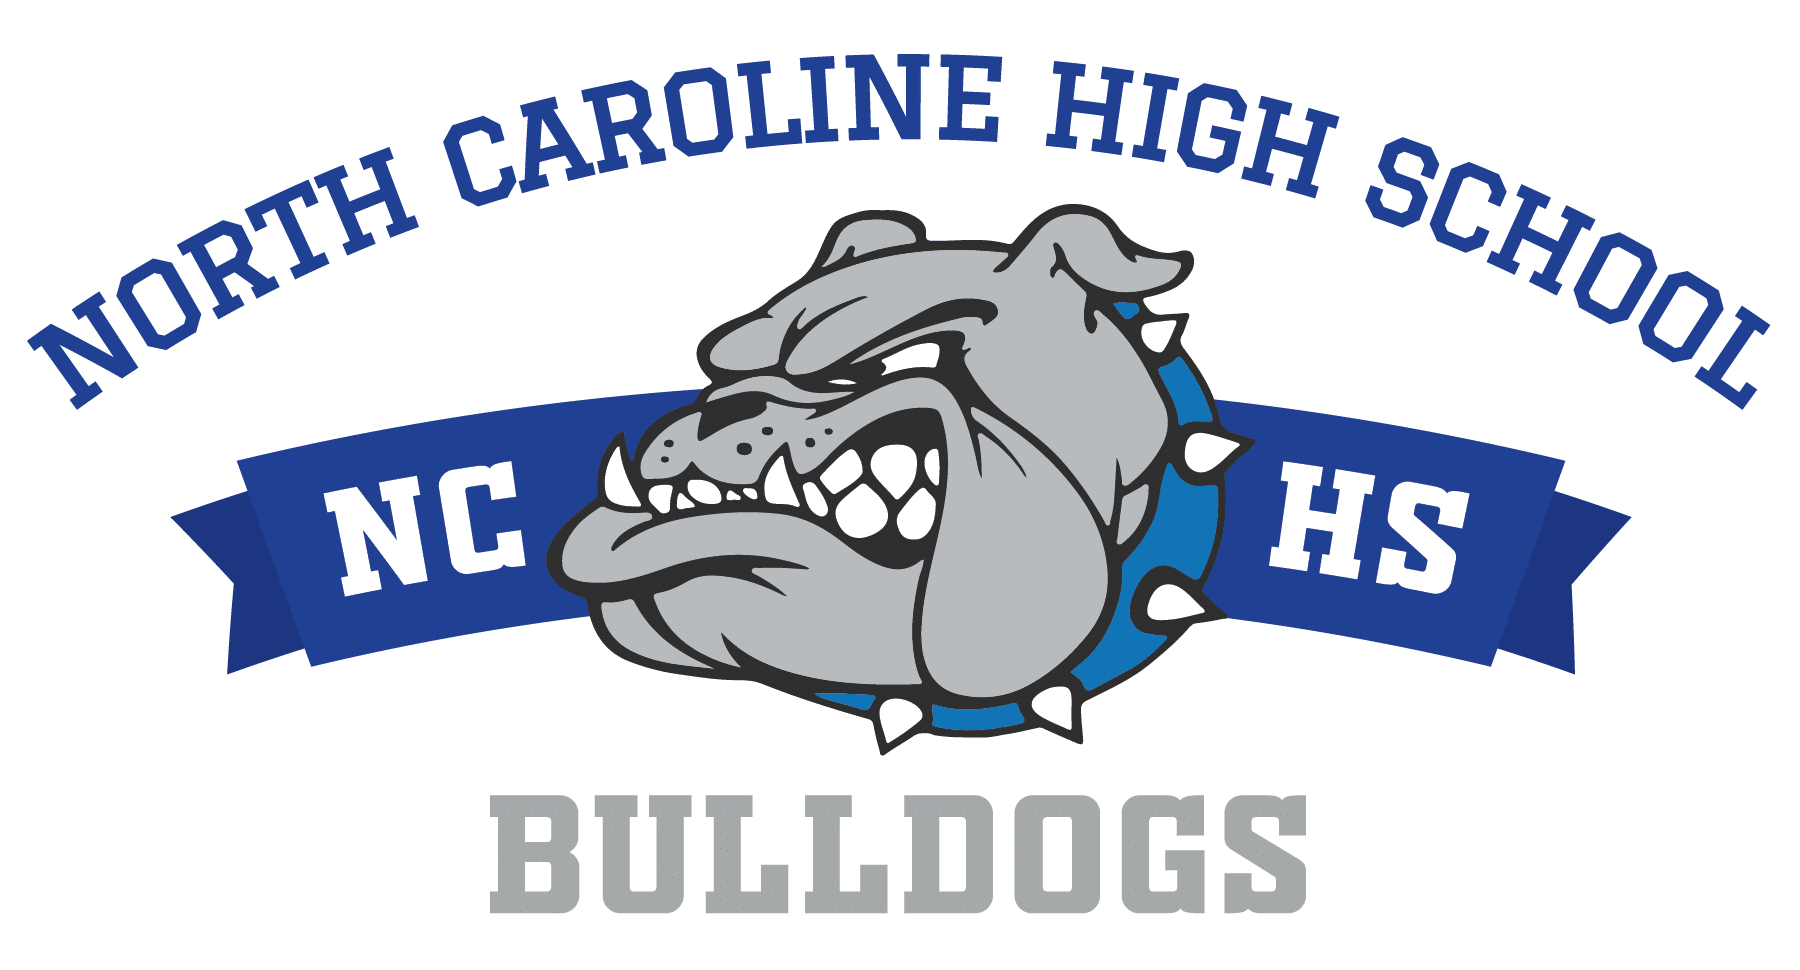 North Caroline High School